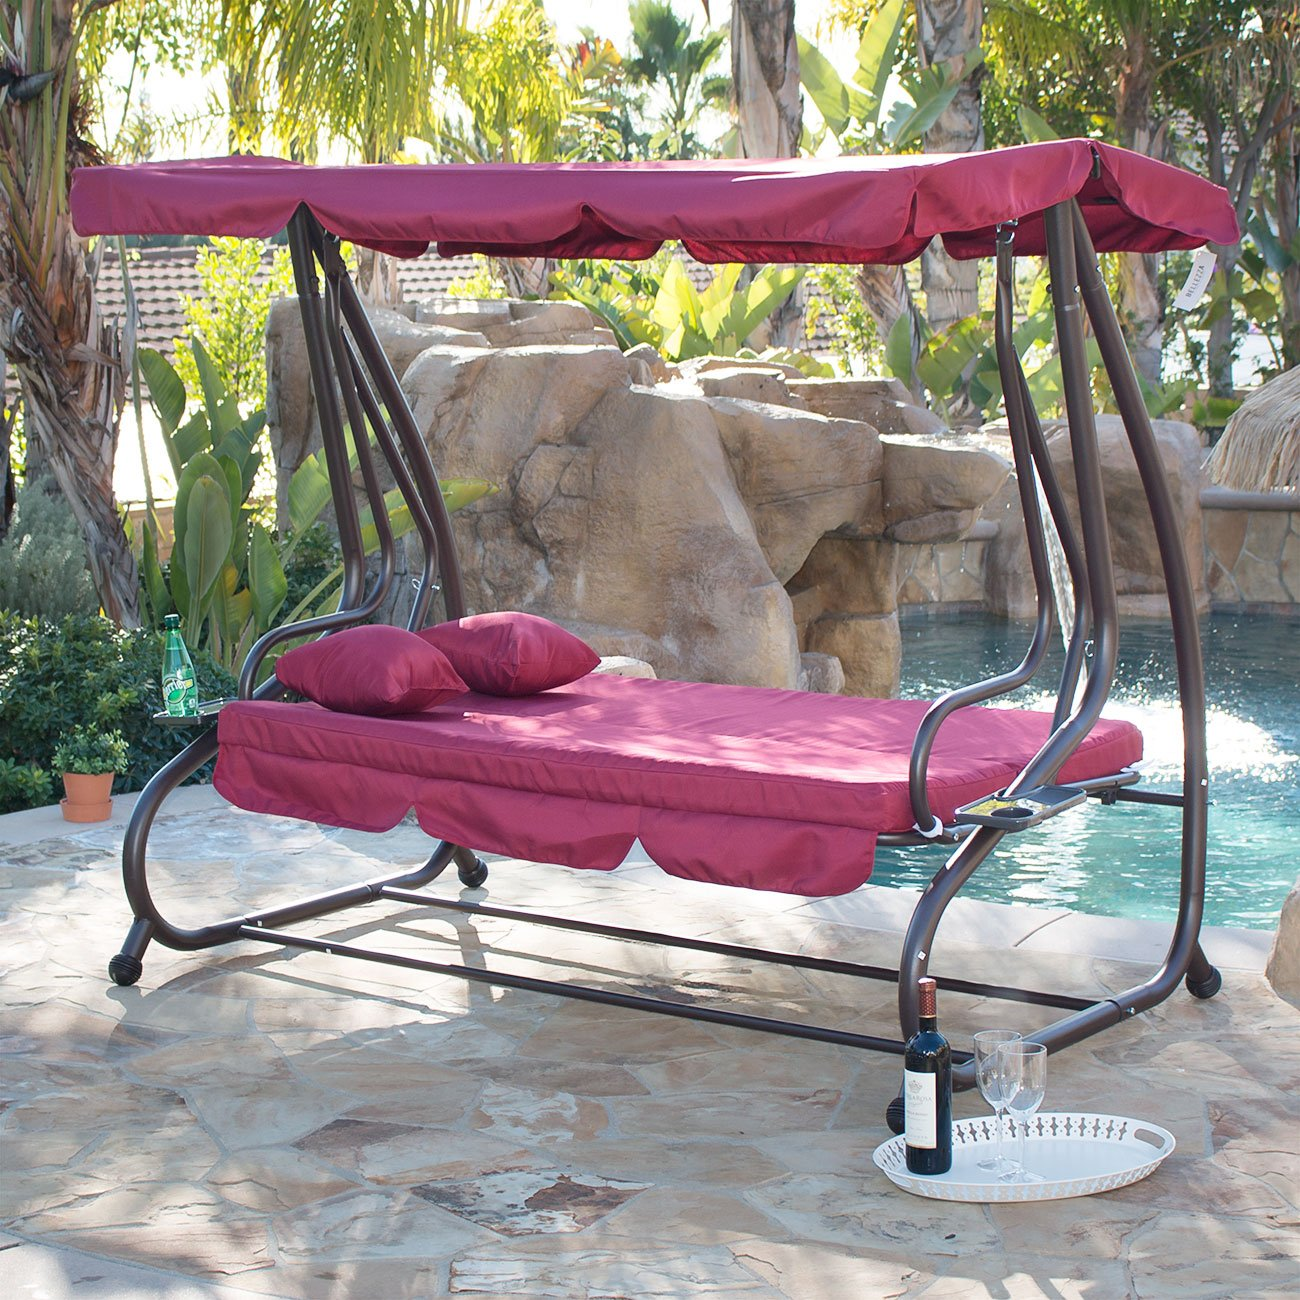 Outdoor swing chair with canopy - Amazon Com Belleze 3 Seat Porch Patio Swing Bed With Pillow Burgundy Garden Outdoor